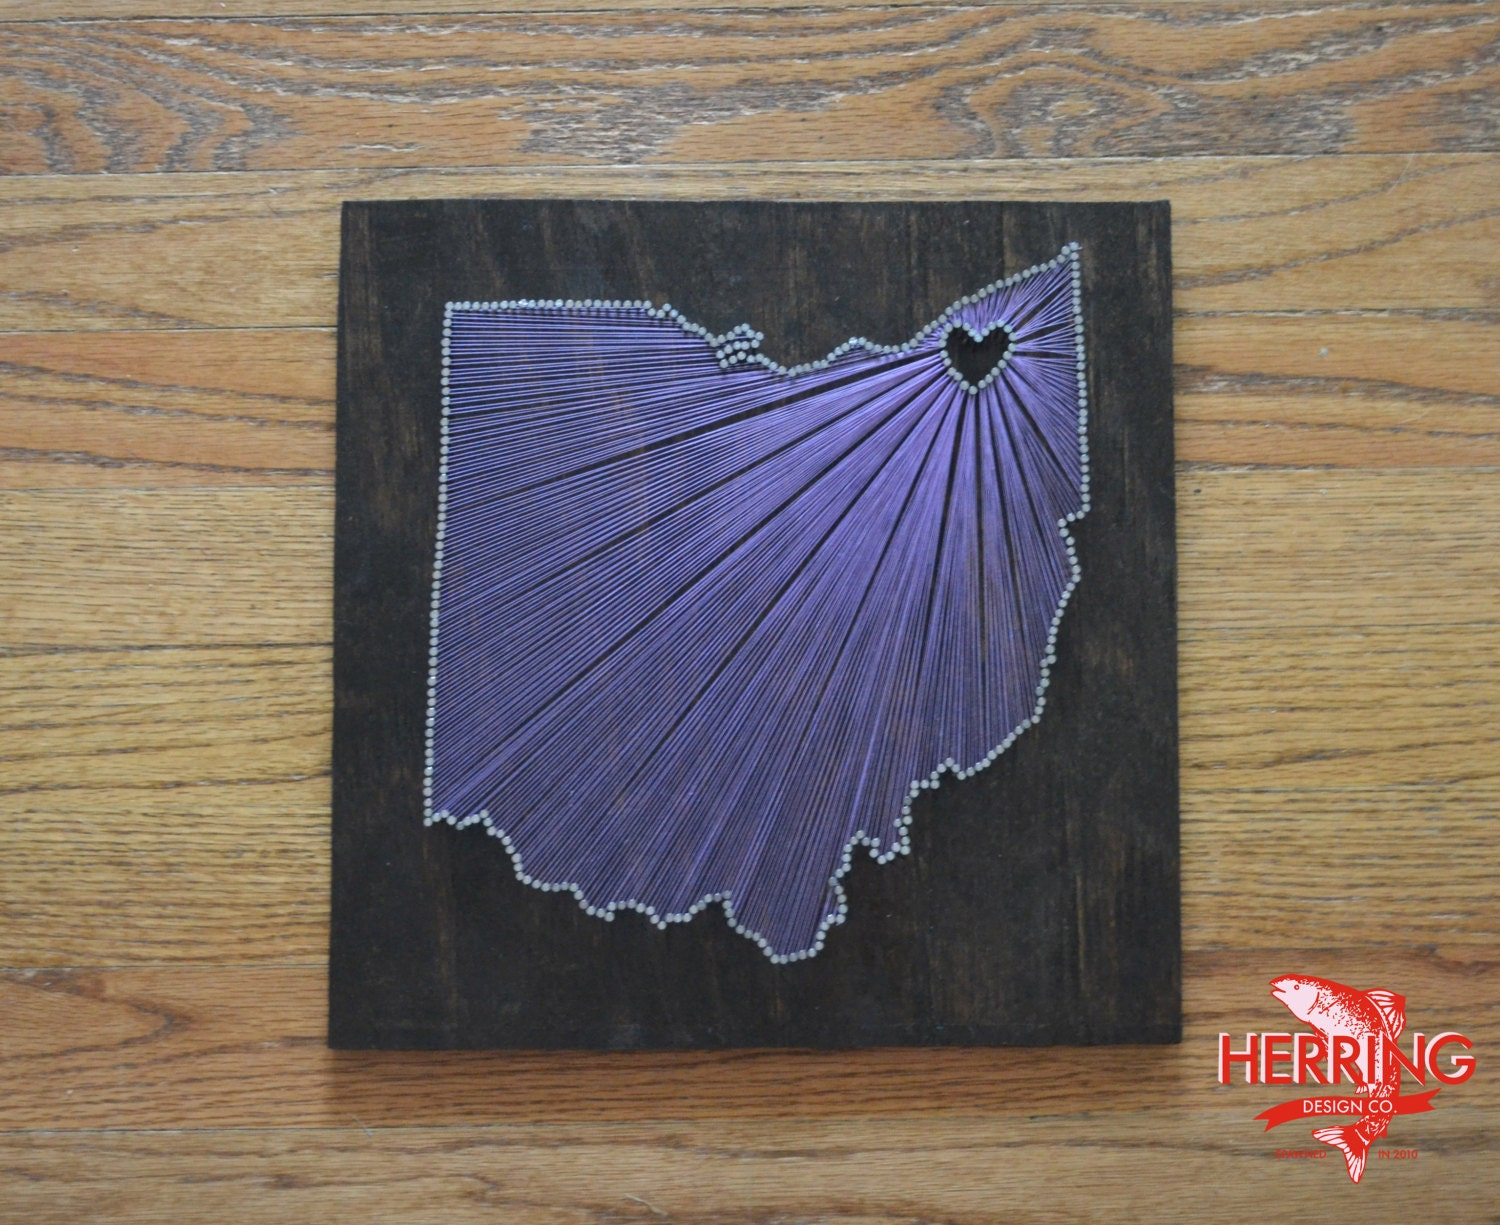 Nail Art Ideas state nail string art : Stained Ohio State String Art Cleveland Ohio Stained Nail